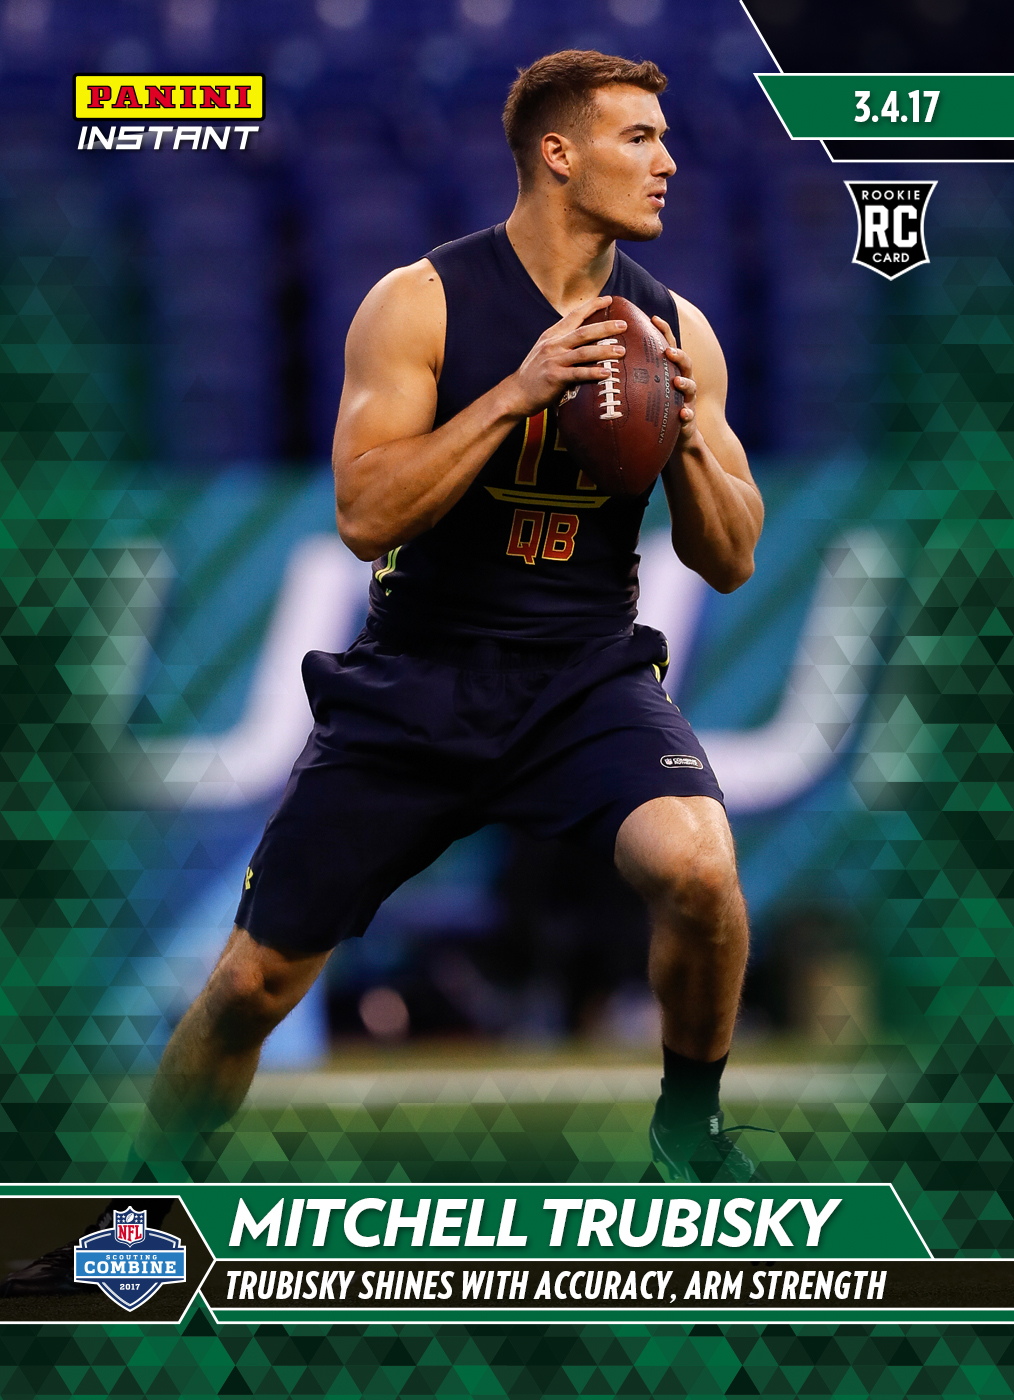 83eb497d32d Mitchell Trubisky- 2017 Panini Instant NFL Rookie Card #4 – Green 1/10 -  March 9